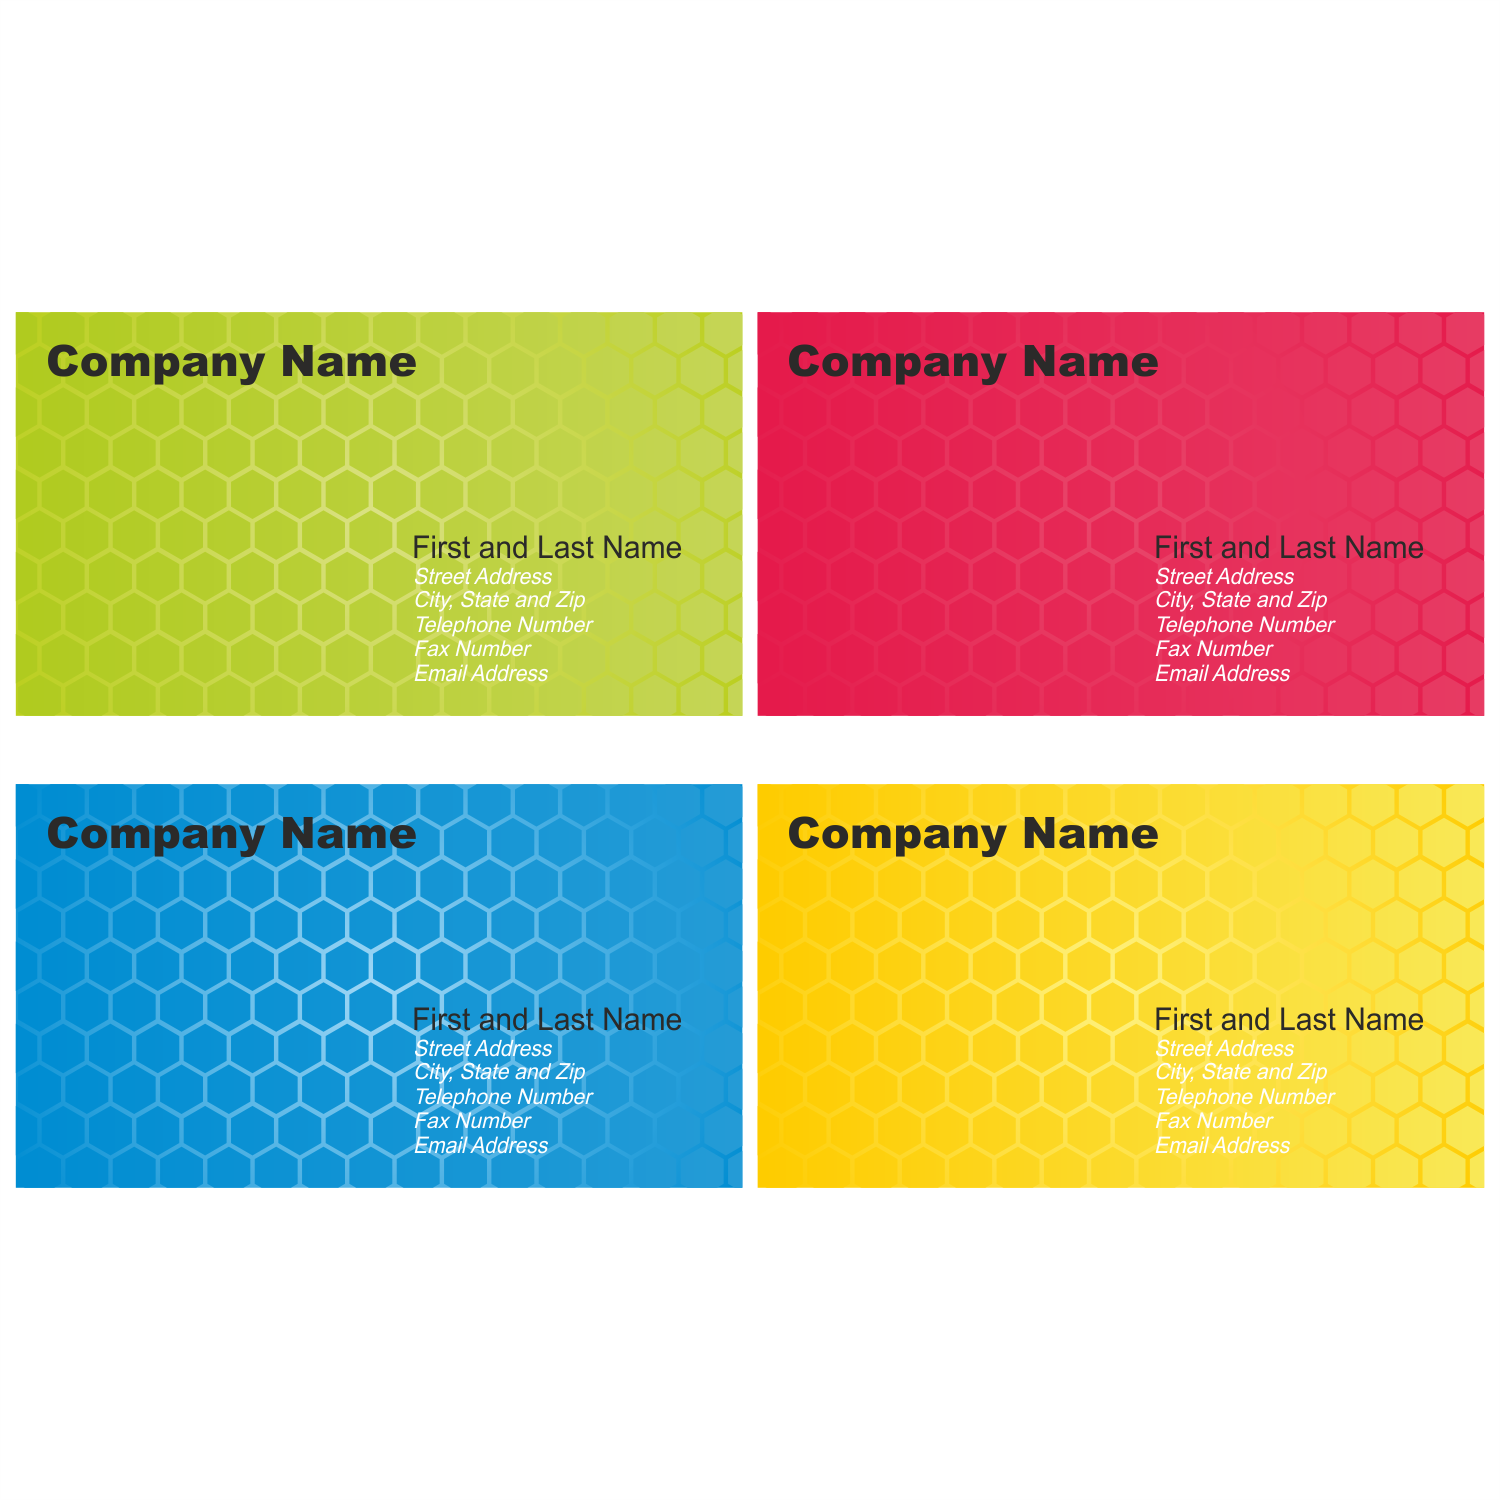 Free avery business card templates business card sample for Business card design free template